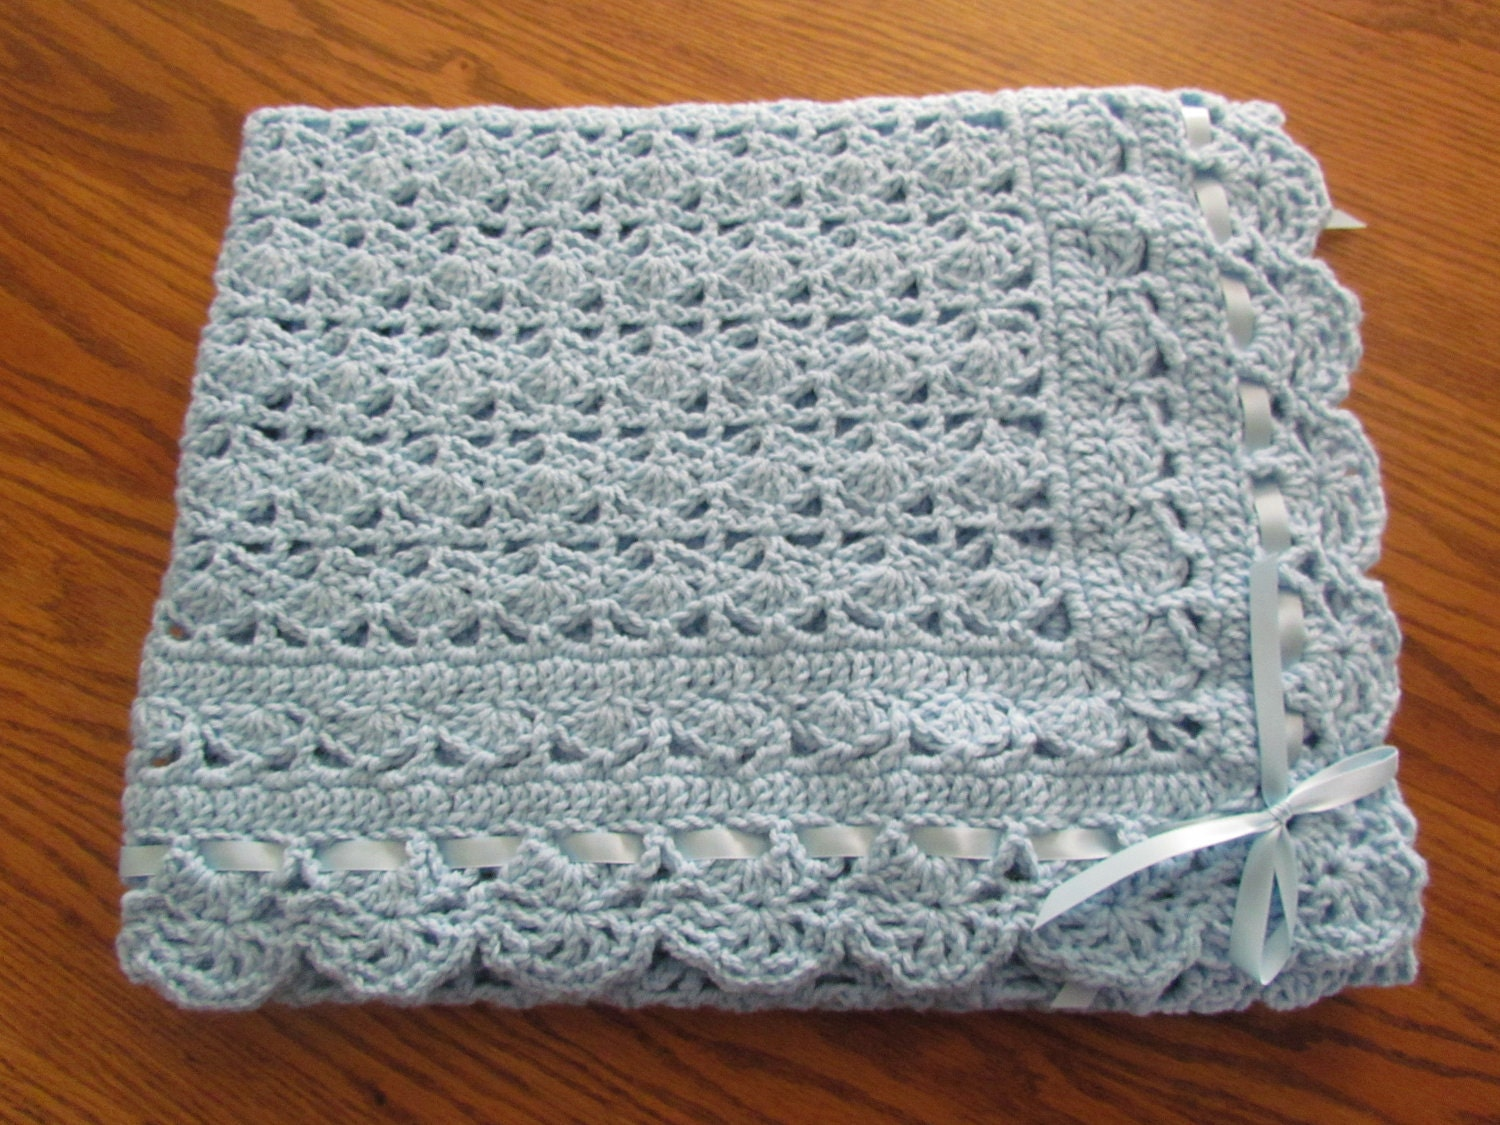 Free Crochet Patterns Christening Blankets : BLANKET CHRISTENING CROCHET PATTERN Crochet Patterns